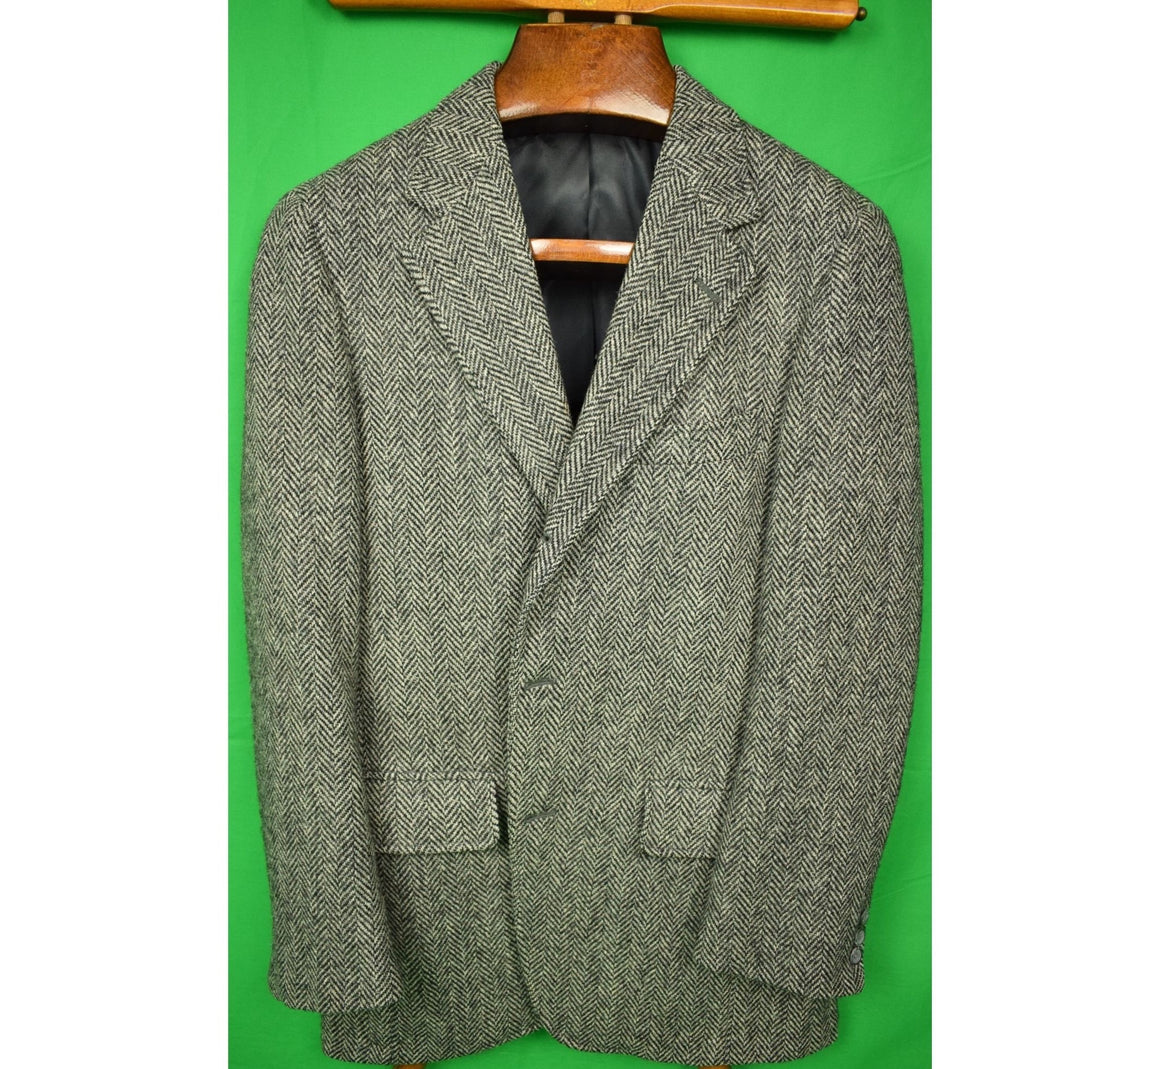 The Andover Shop Char Grey Herringbone Cheviot Tweed Jacket Sz 40R (SOLD)